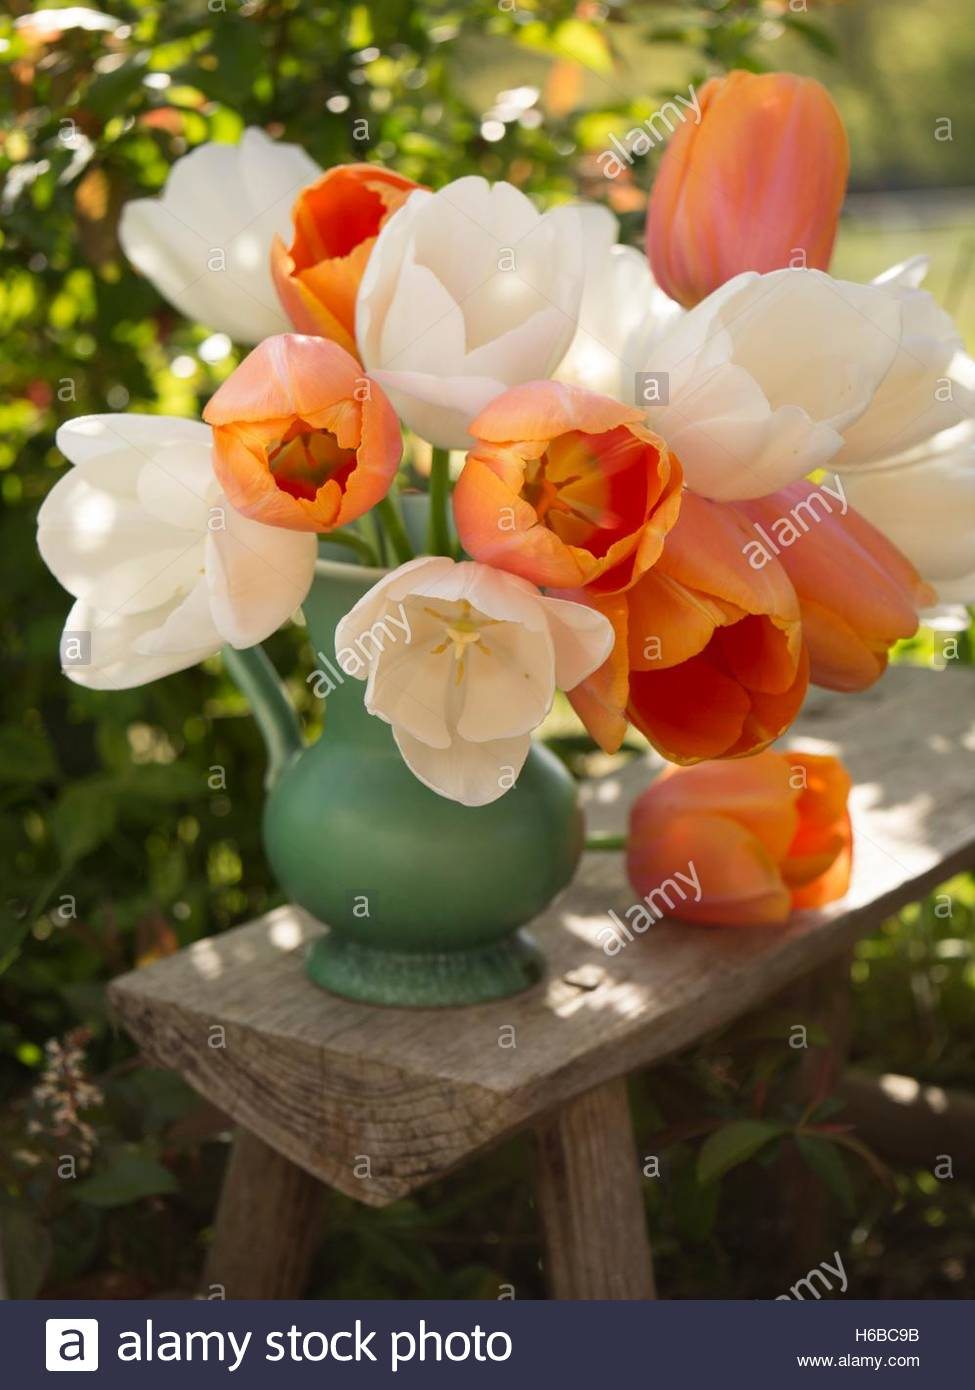 'Maureen' and 'Apricot Beauty' tulips bunch - Stock Image